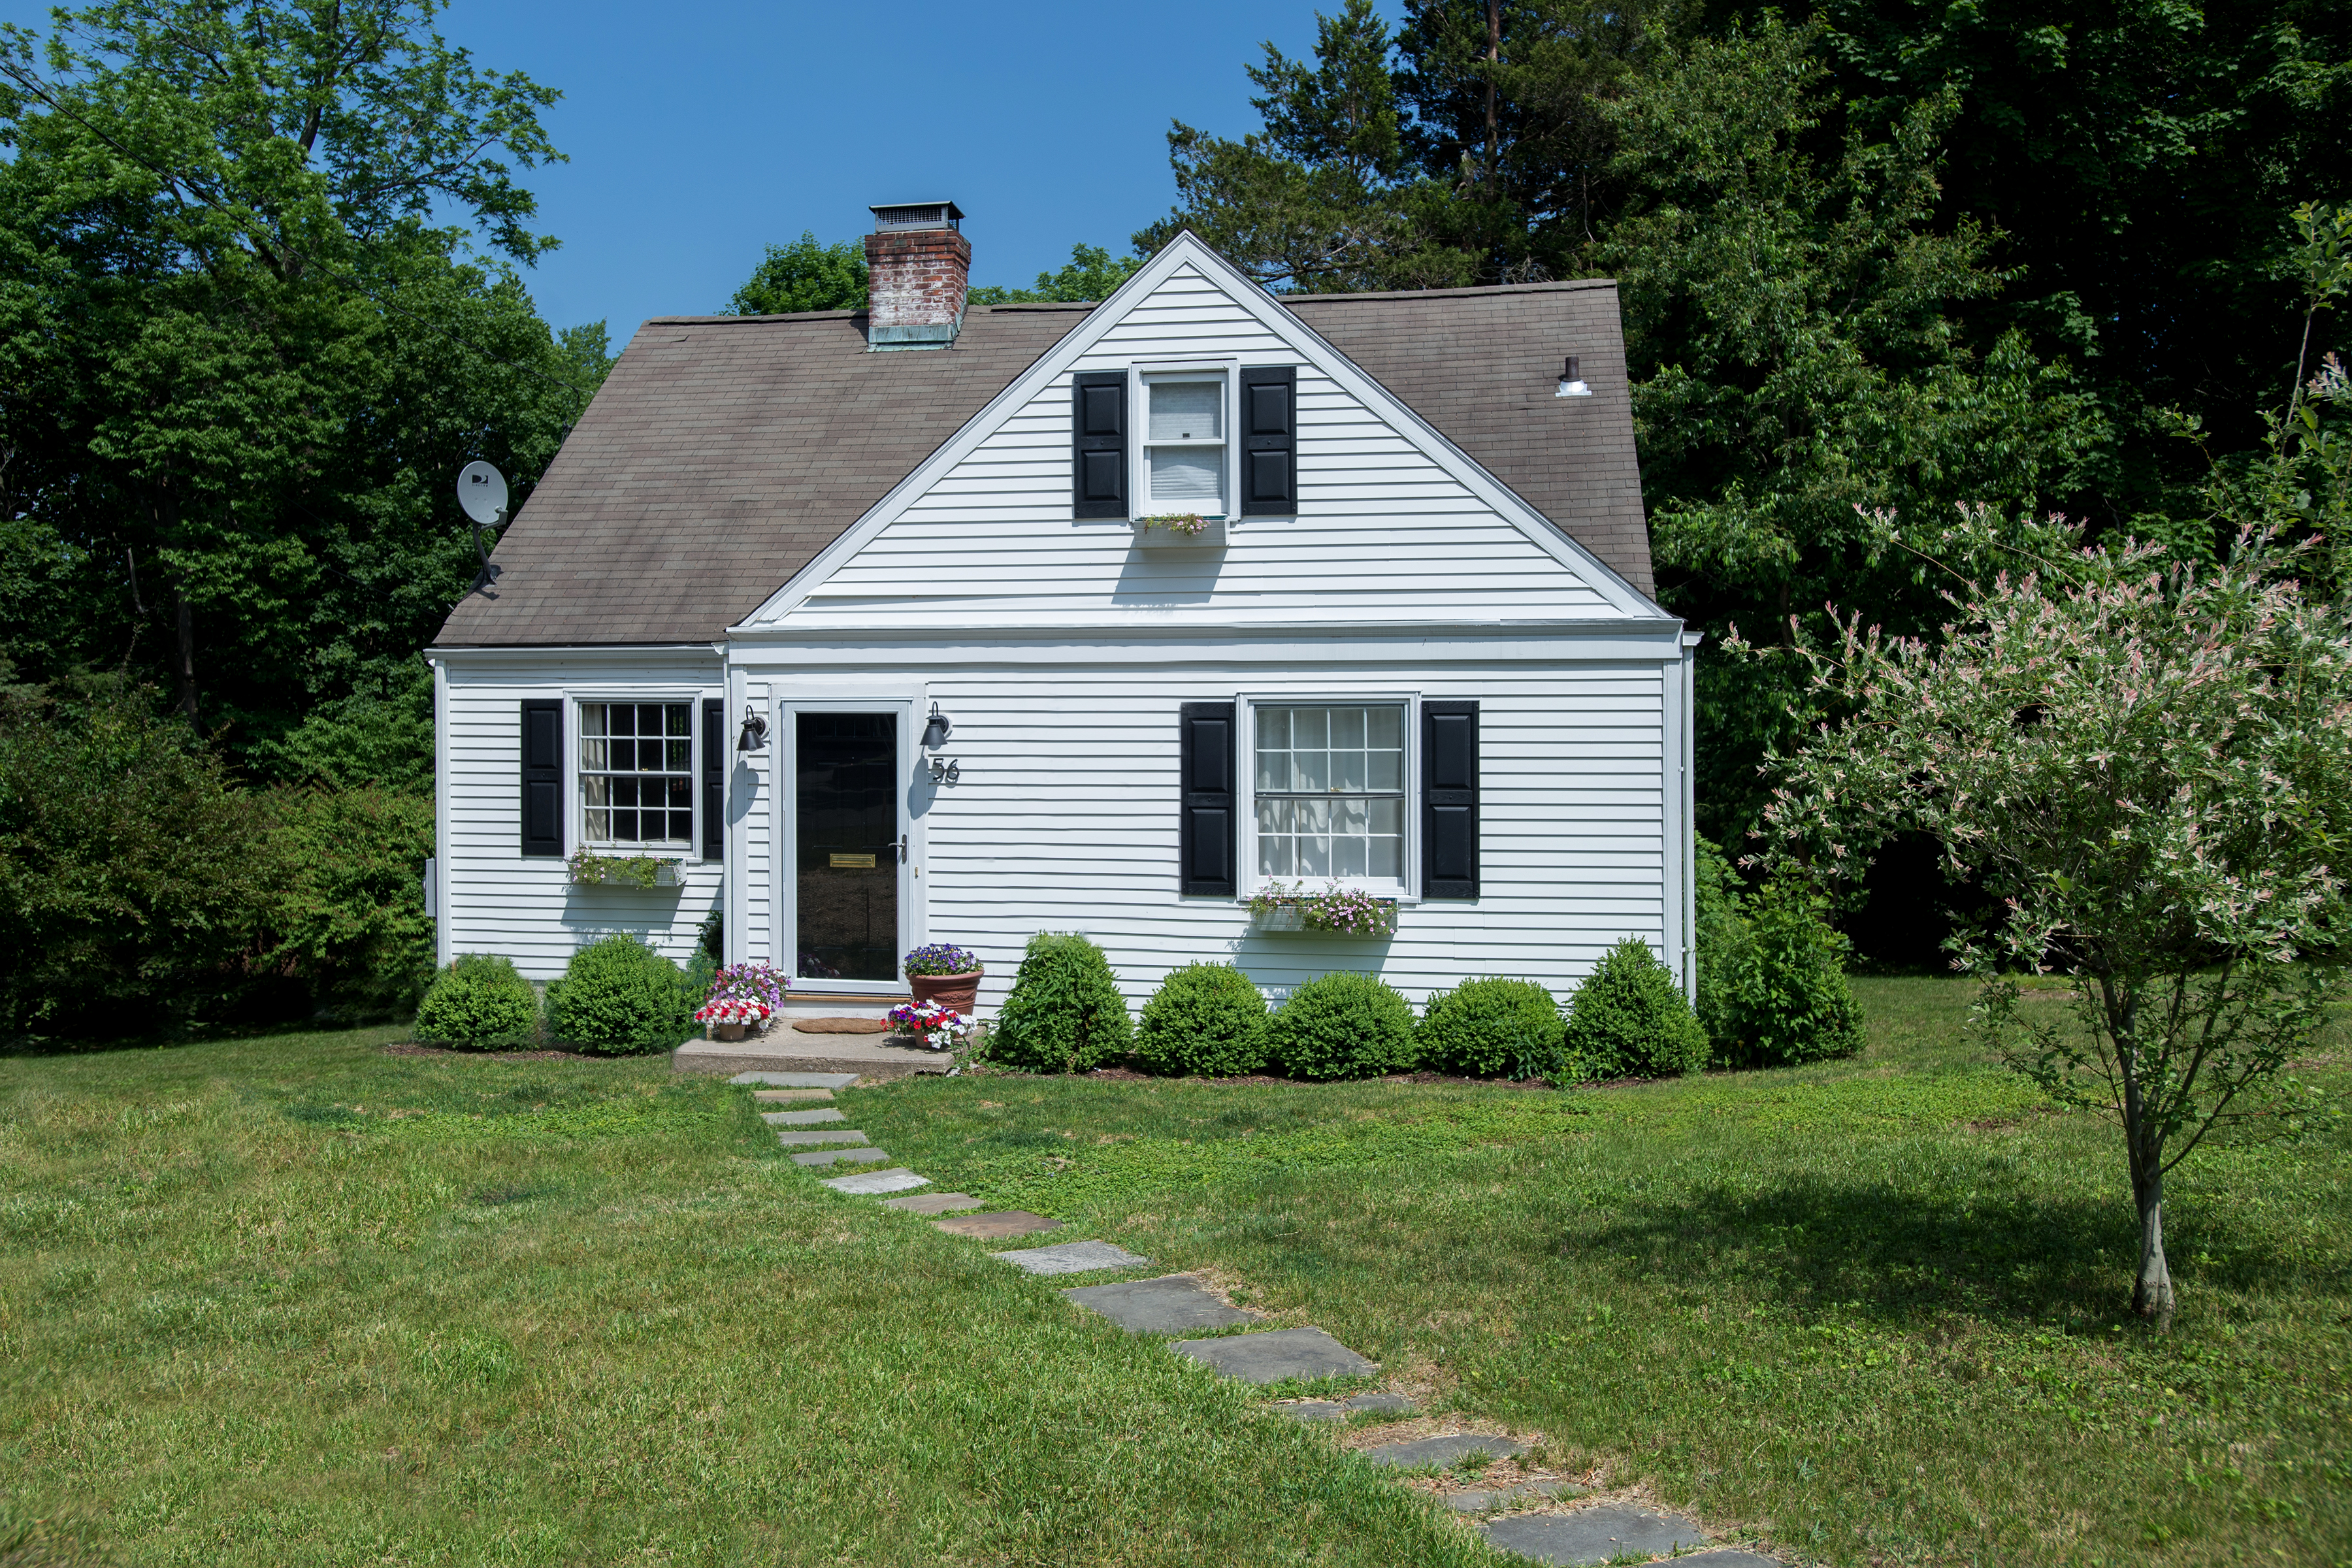 Single Family Home for Sale at IDEAL INVESTMENT PROPERTY 56 Sunrise Avenue New Canaan, Connecticut, 06840 United States